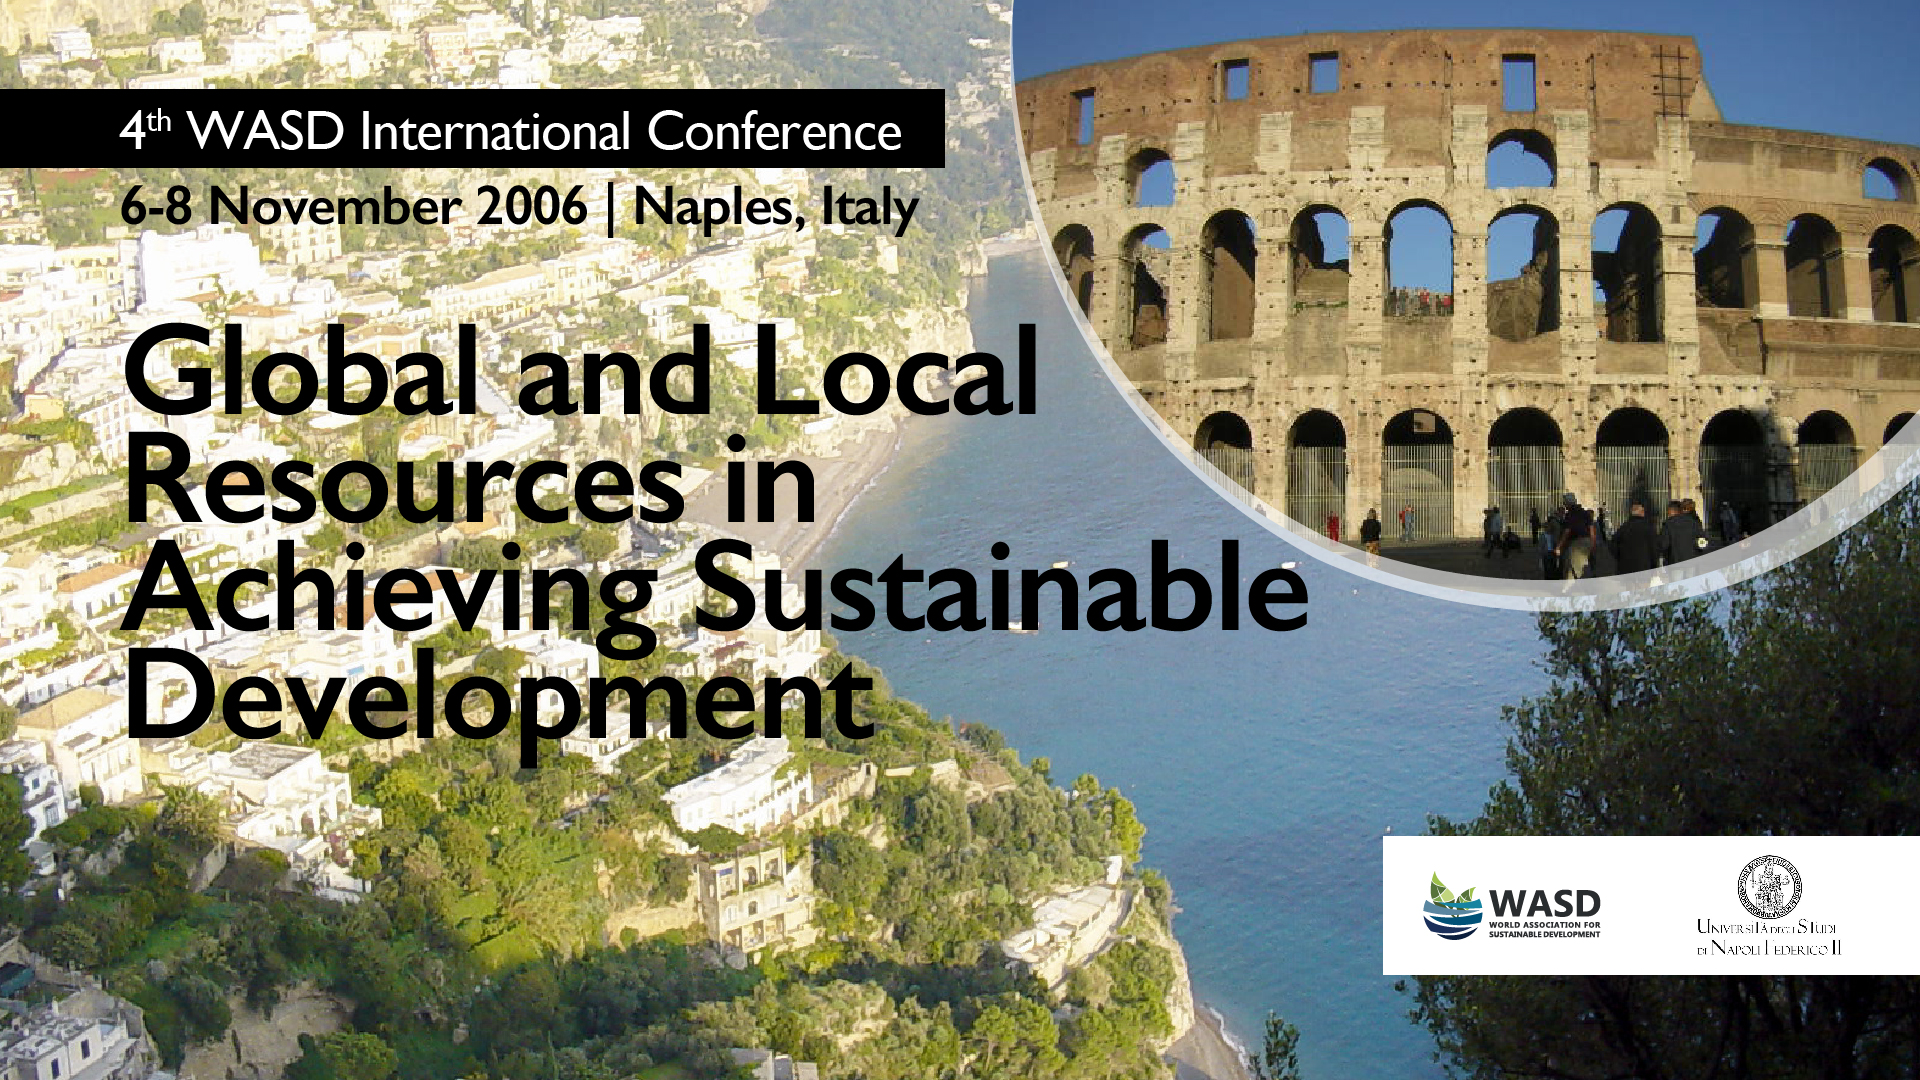 4th Sustainability Conference, Naples, Italy 2006<div style='clear:both;width:100%;height:0px;'></div><span class='cat'>Sustainability Conferences</span>